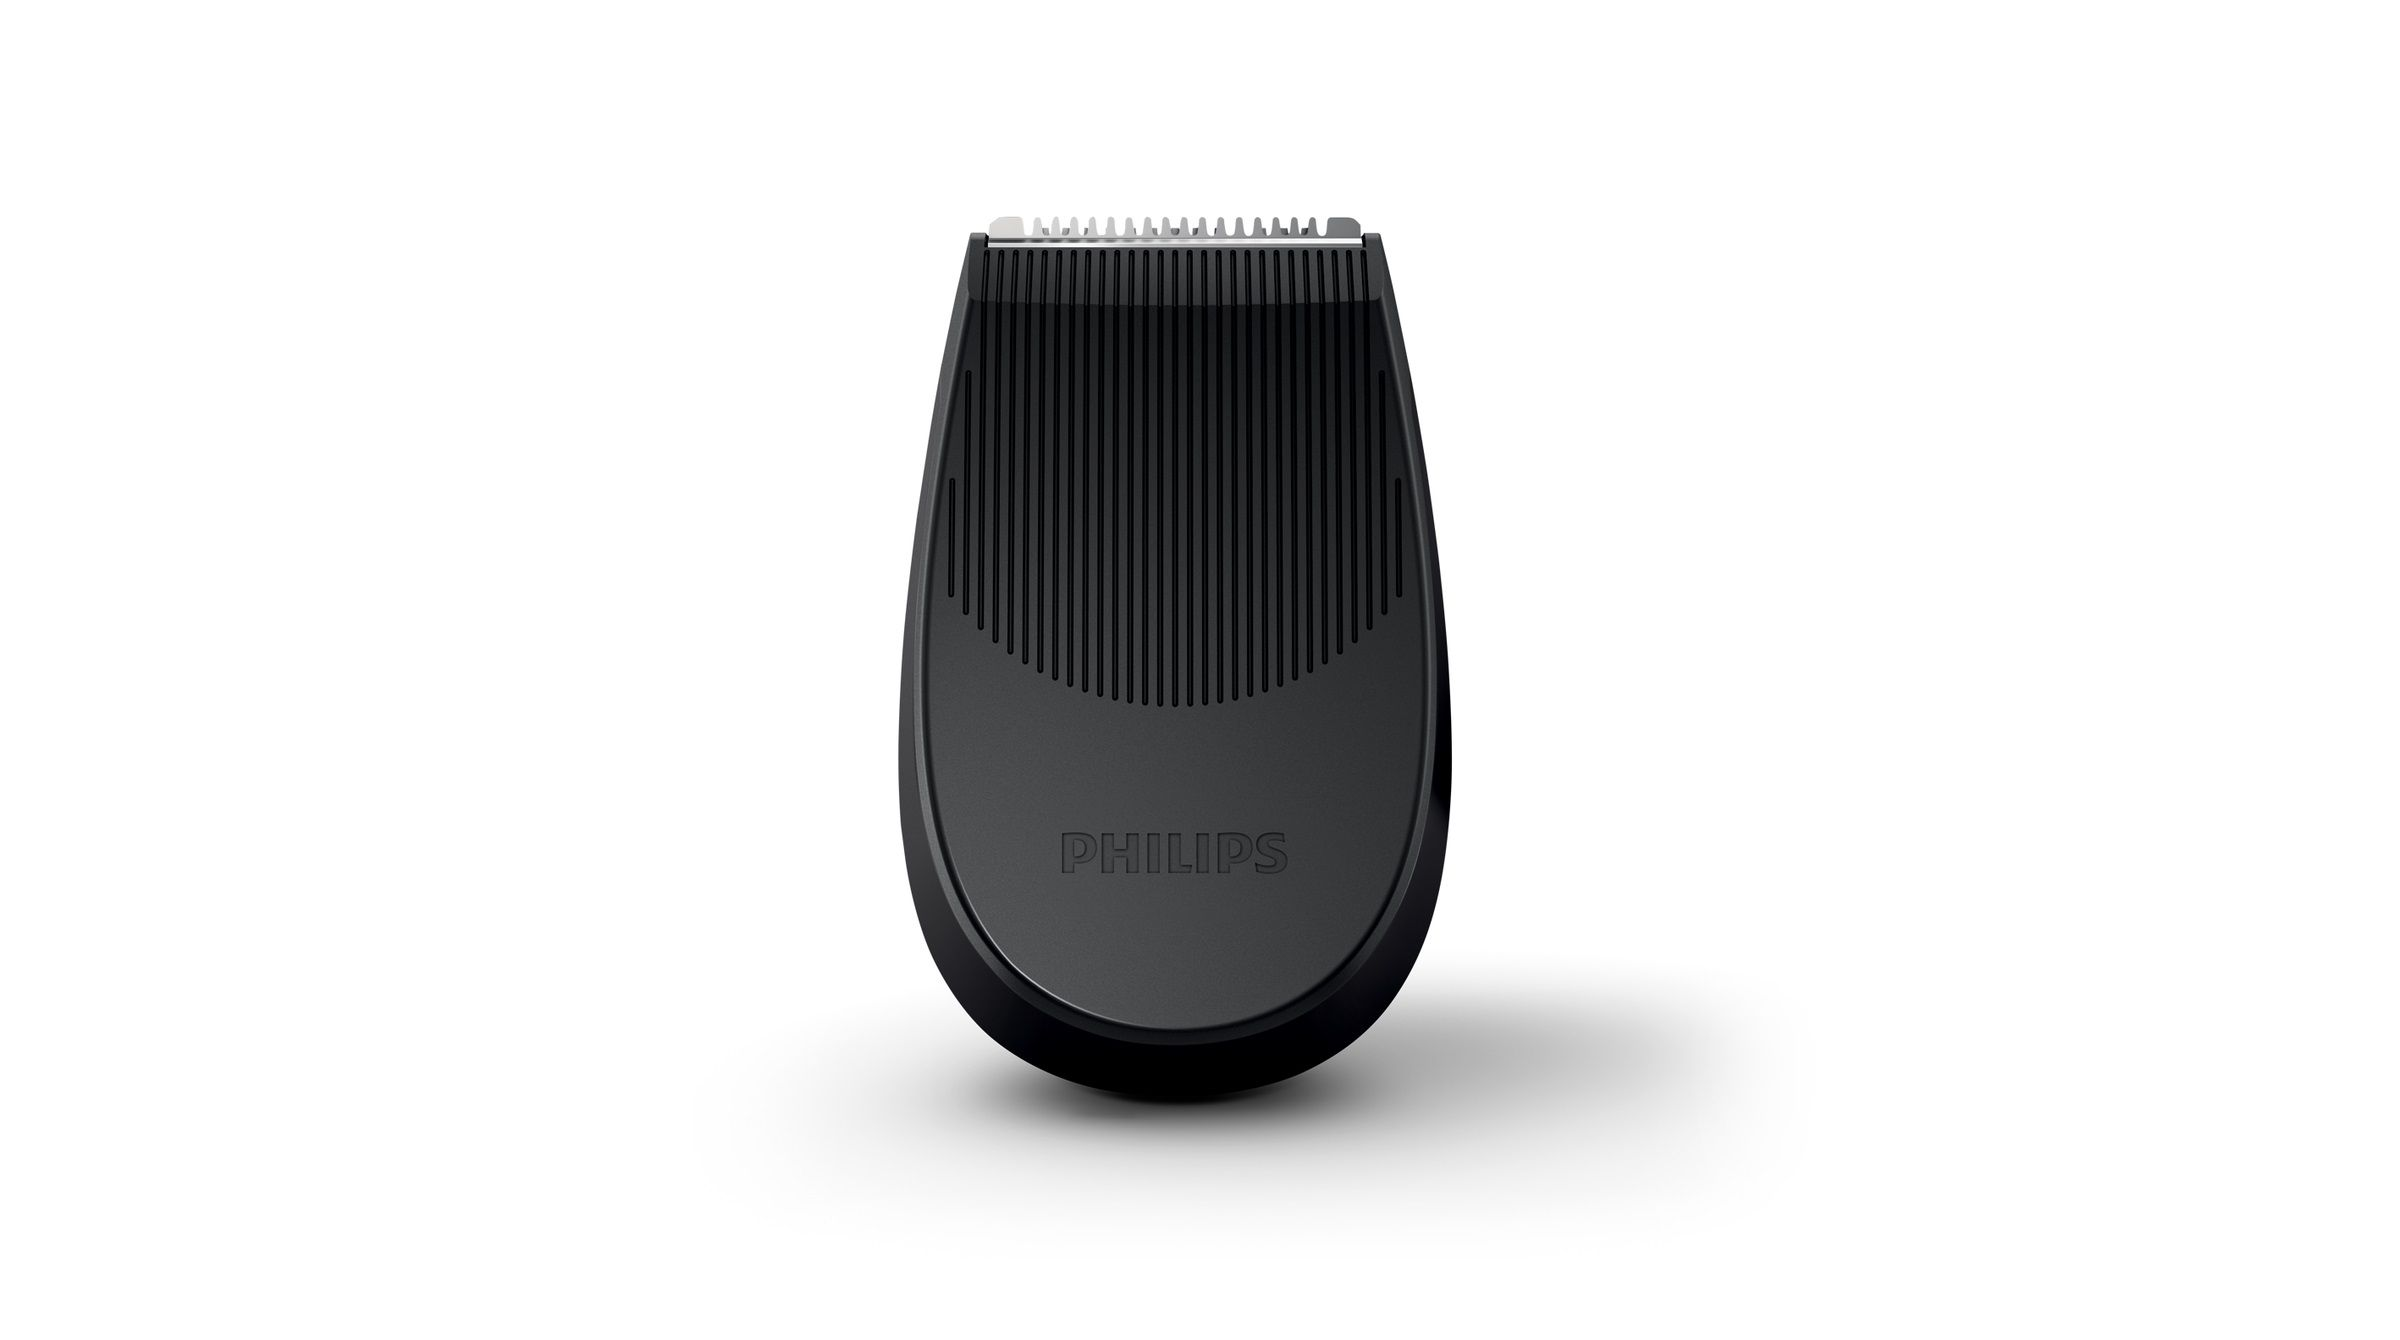 philips aqua touch s5050 06 shavers philips aqua touch s5050